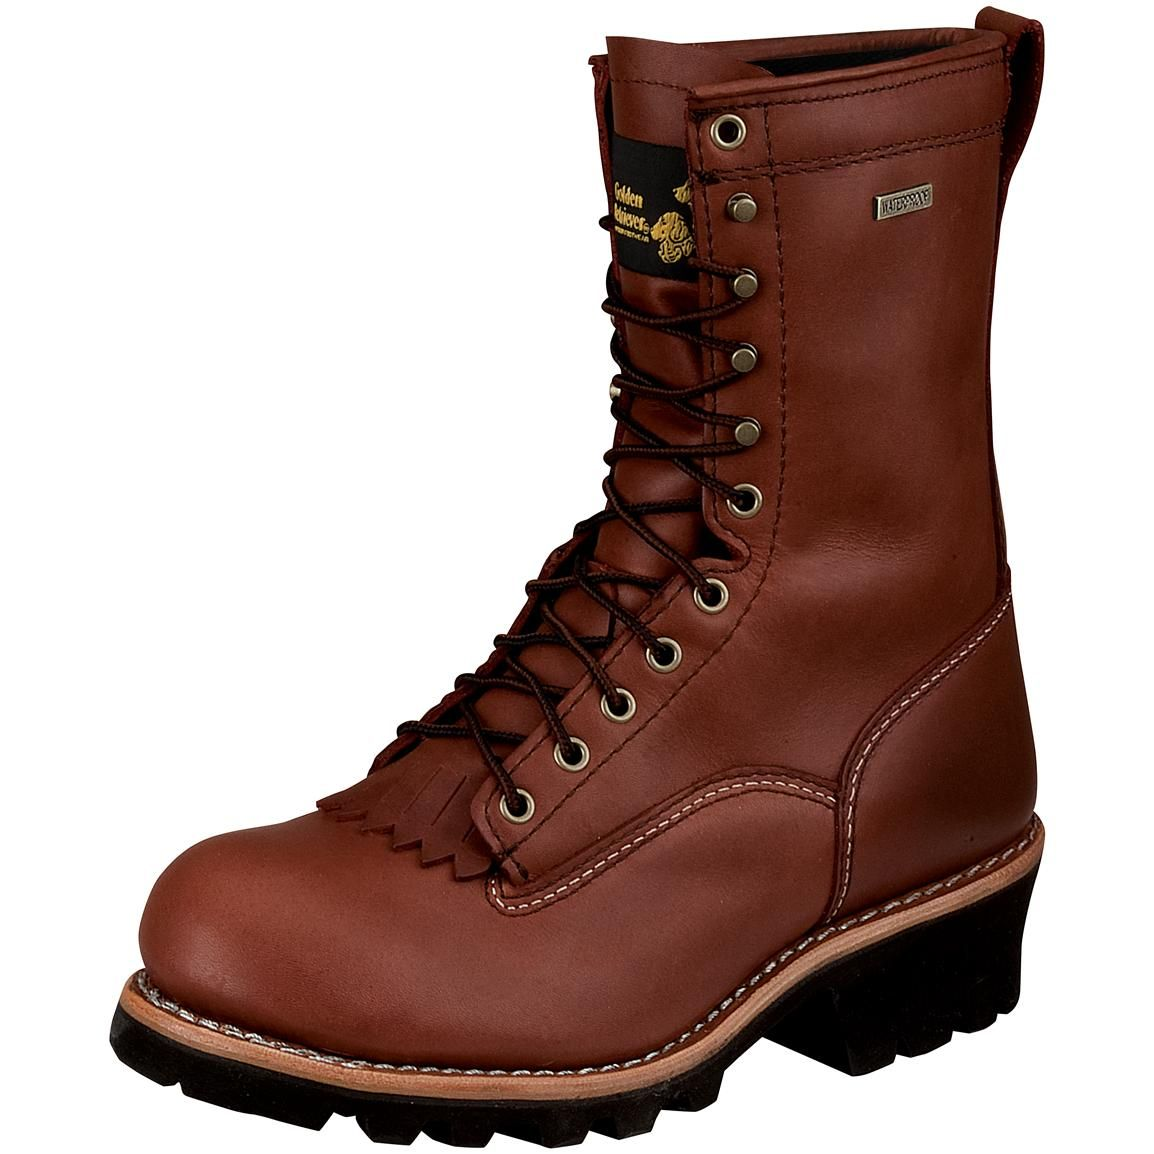 Men S Work Boots Boots Work Boots